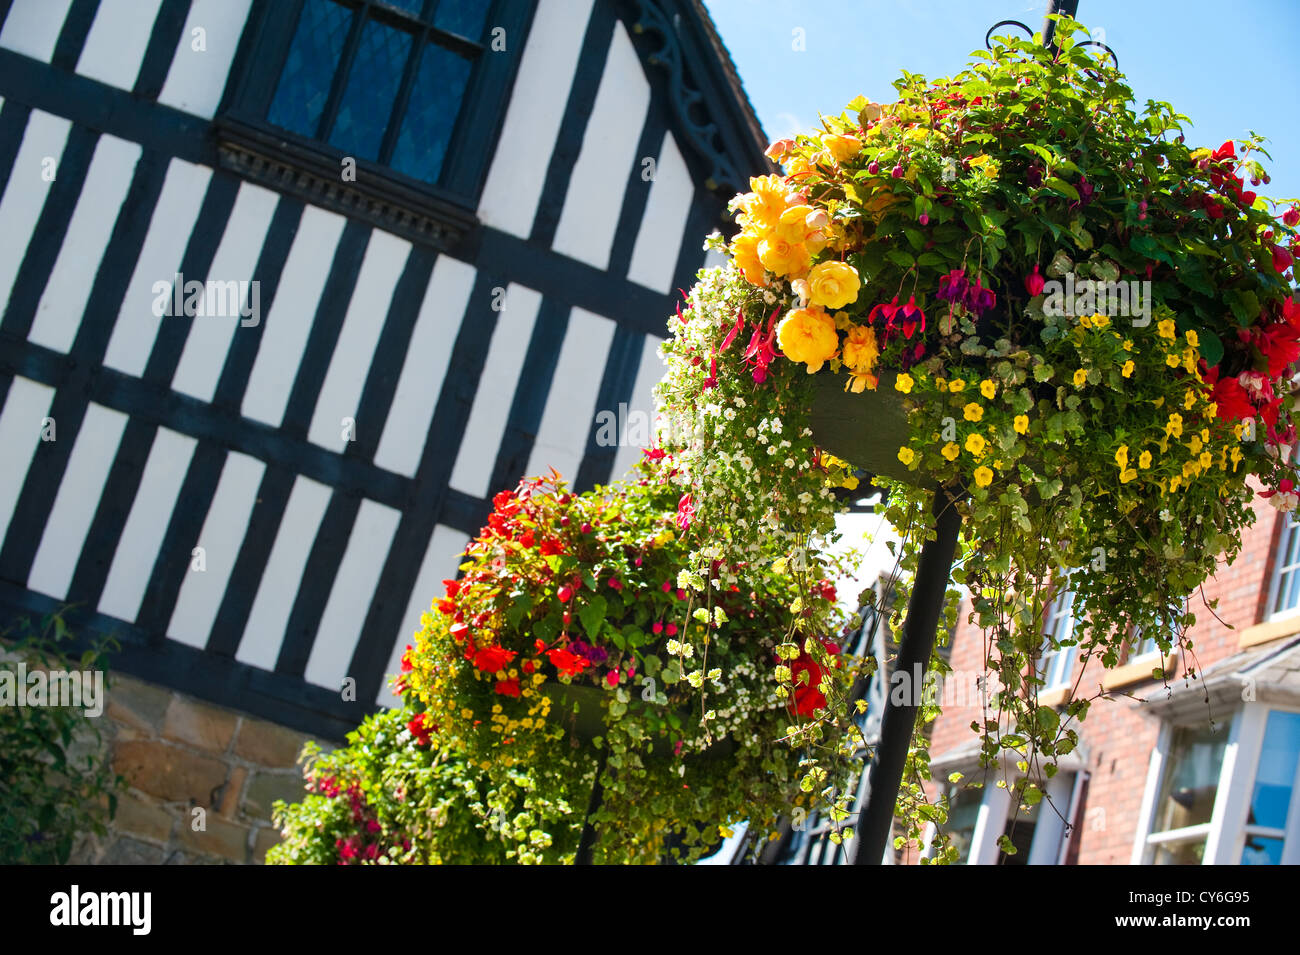 Flowers in hanging baskets, Much Wenlock, Shropshire, England - Stock Image